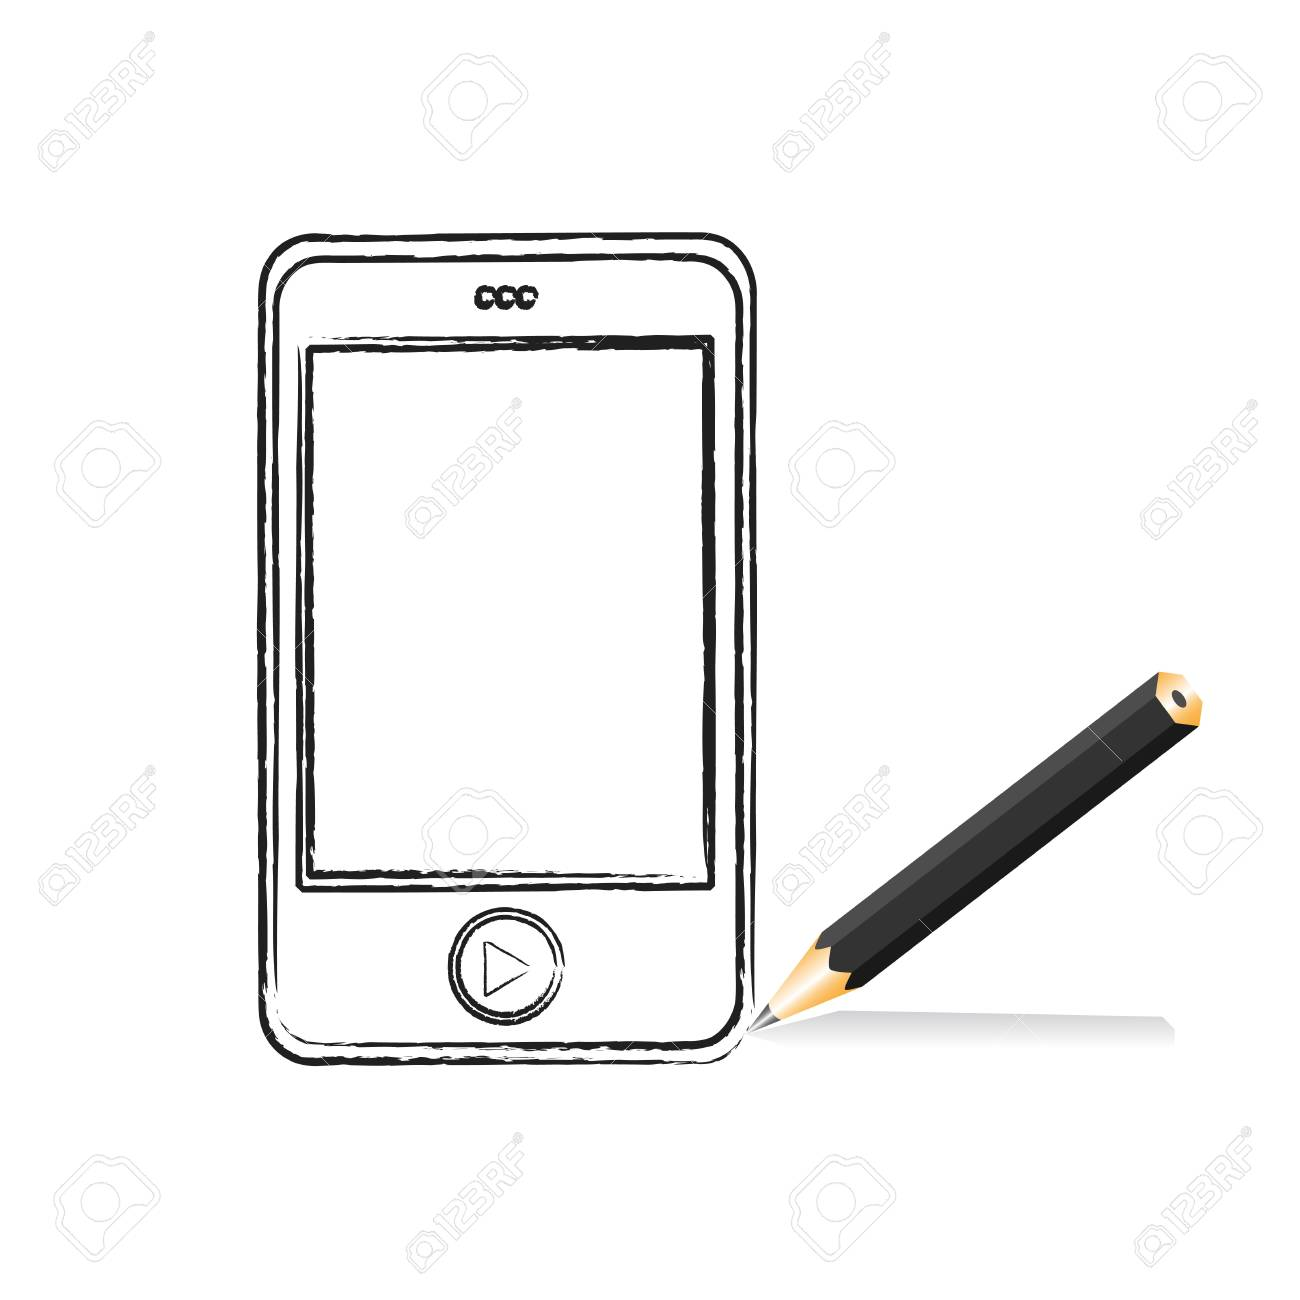 Cartoon MP3 player for your design, vector illustration Stock Vector - 9542805